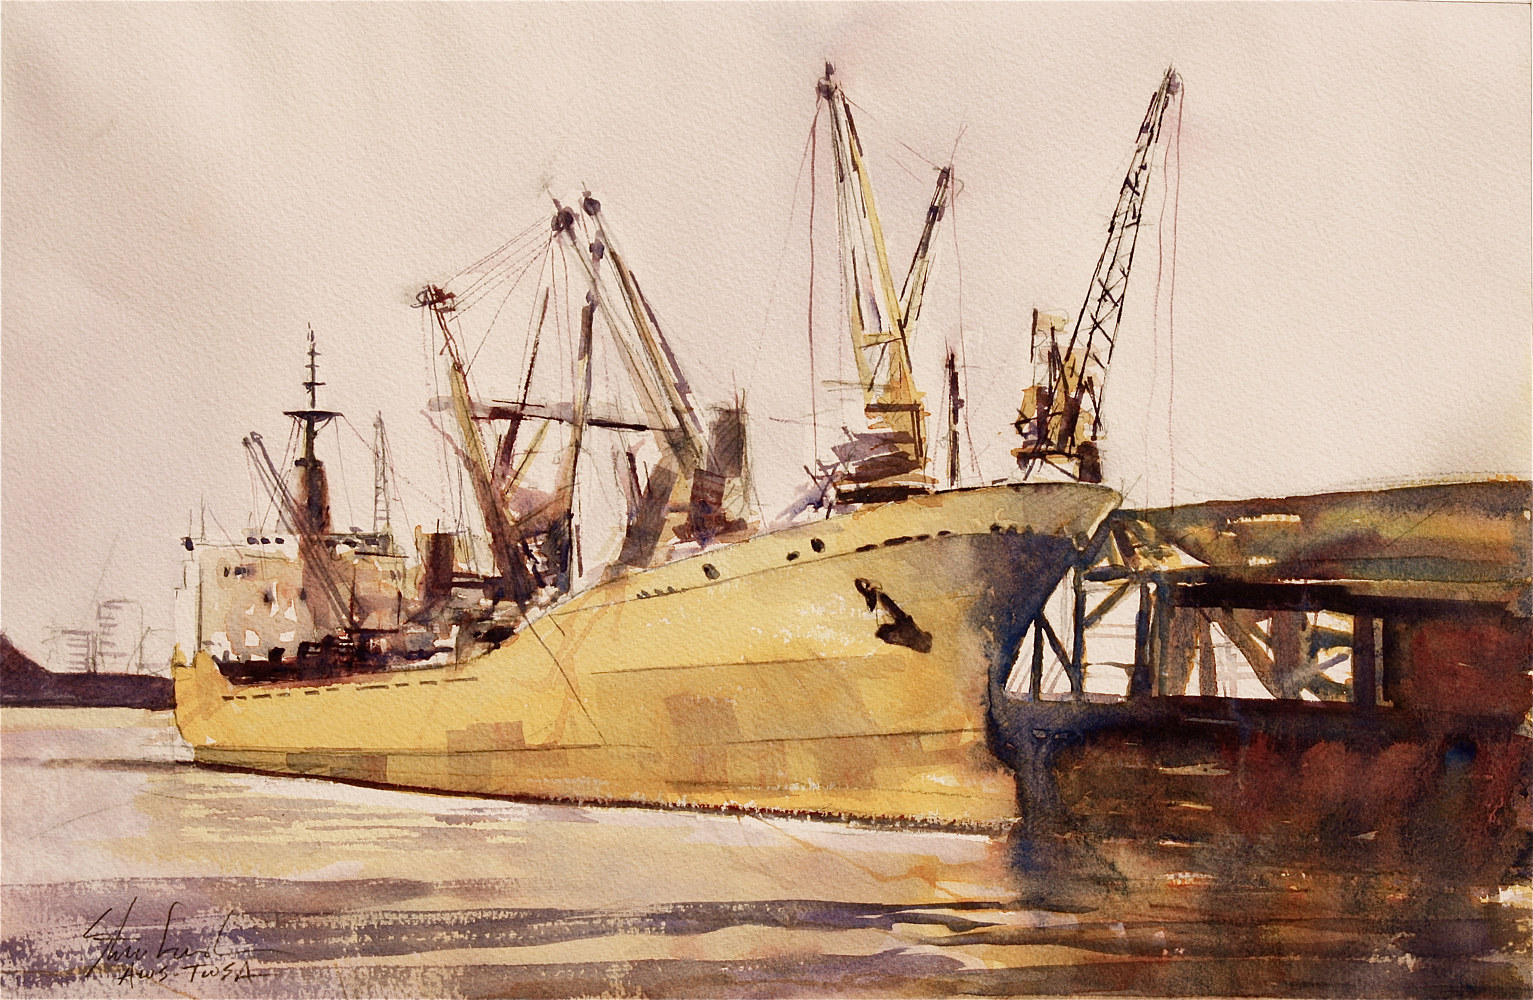 Watercolor The Yellow Ship by Nella Lush